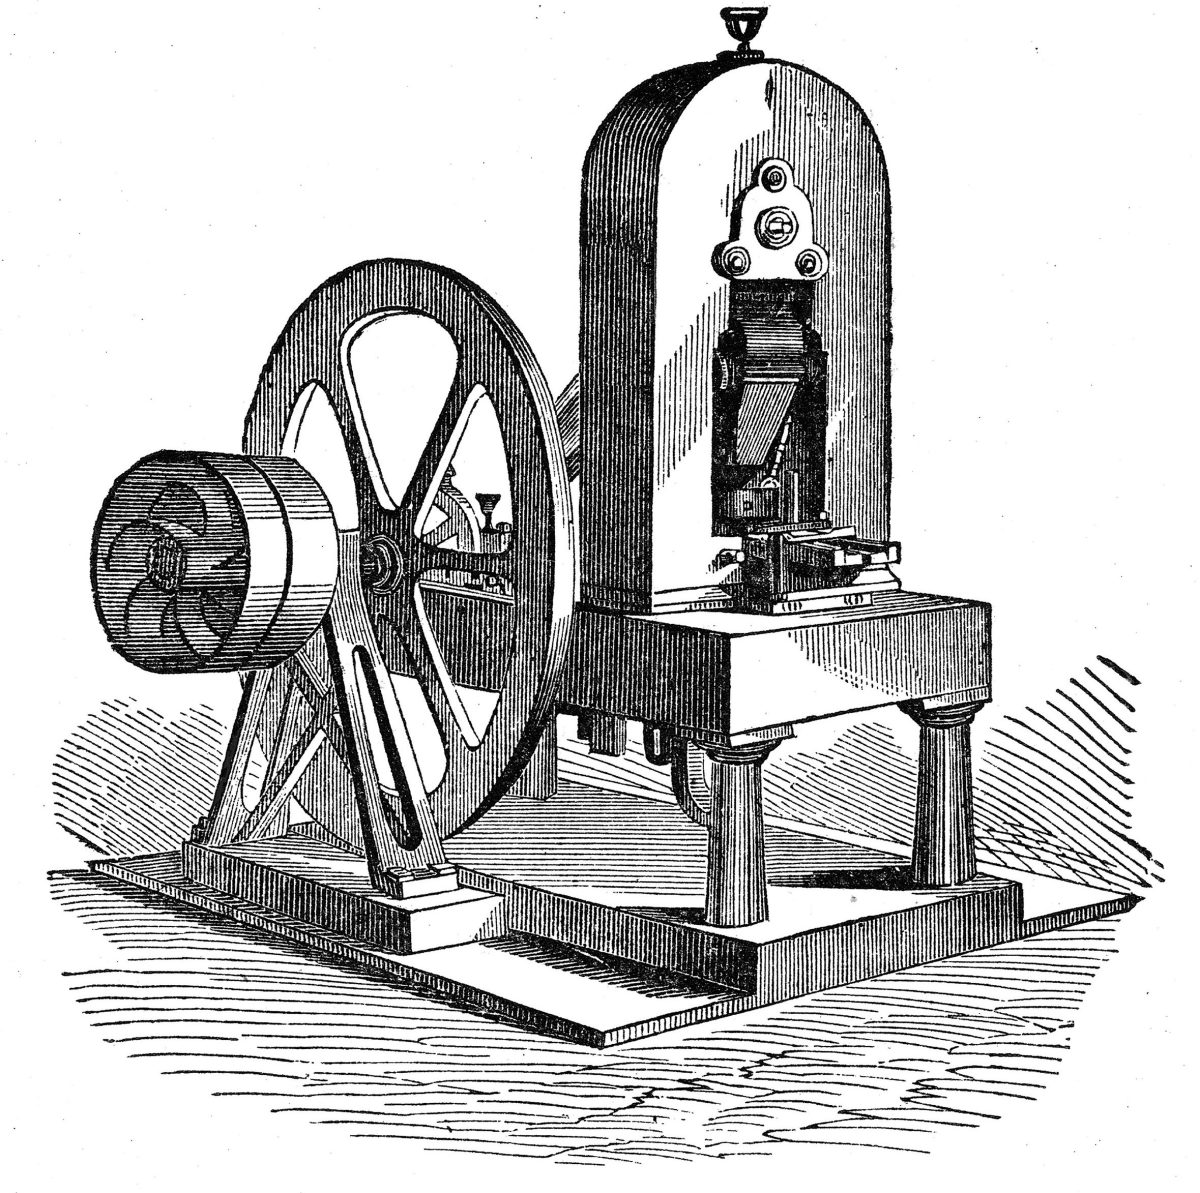 The 1836 steam coining press.